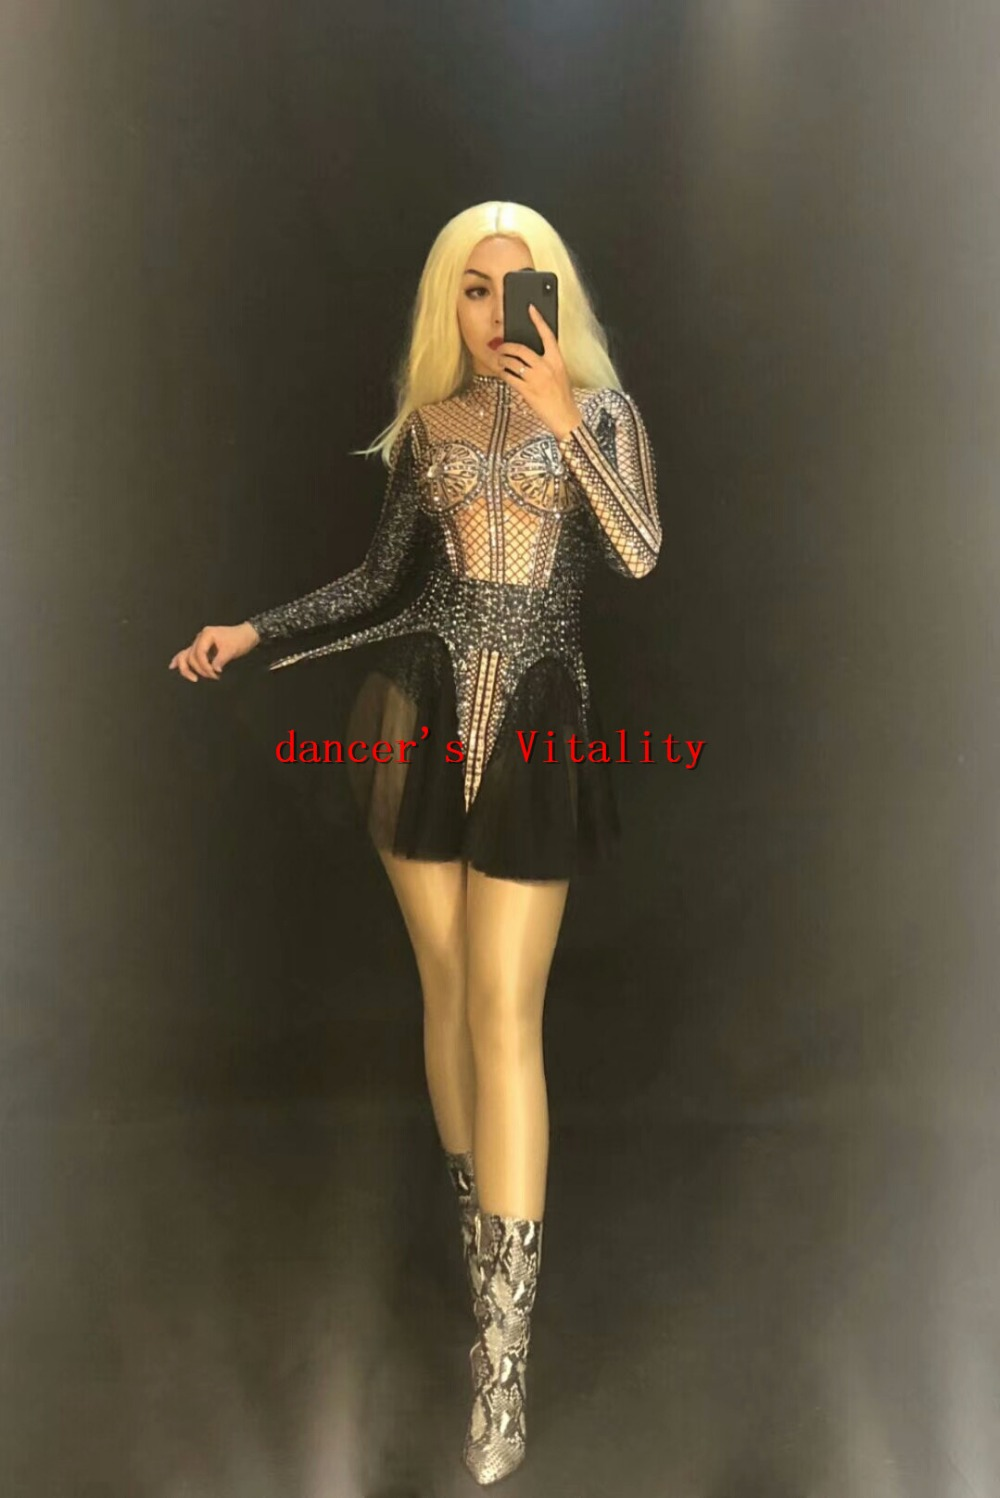 Chinese Folk Dance Sparkly Crystals Black Jumpsuit Stretch Ds Pearl Stretch Outfit Celebrate Bright Rhinestones Bodysuit Female Singer Costume Novelty & Special Use